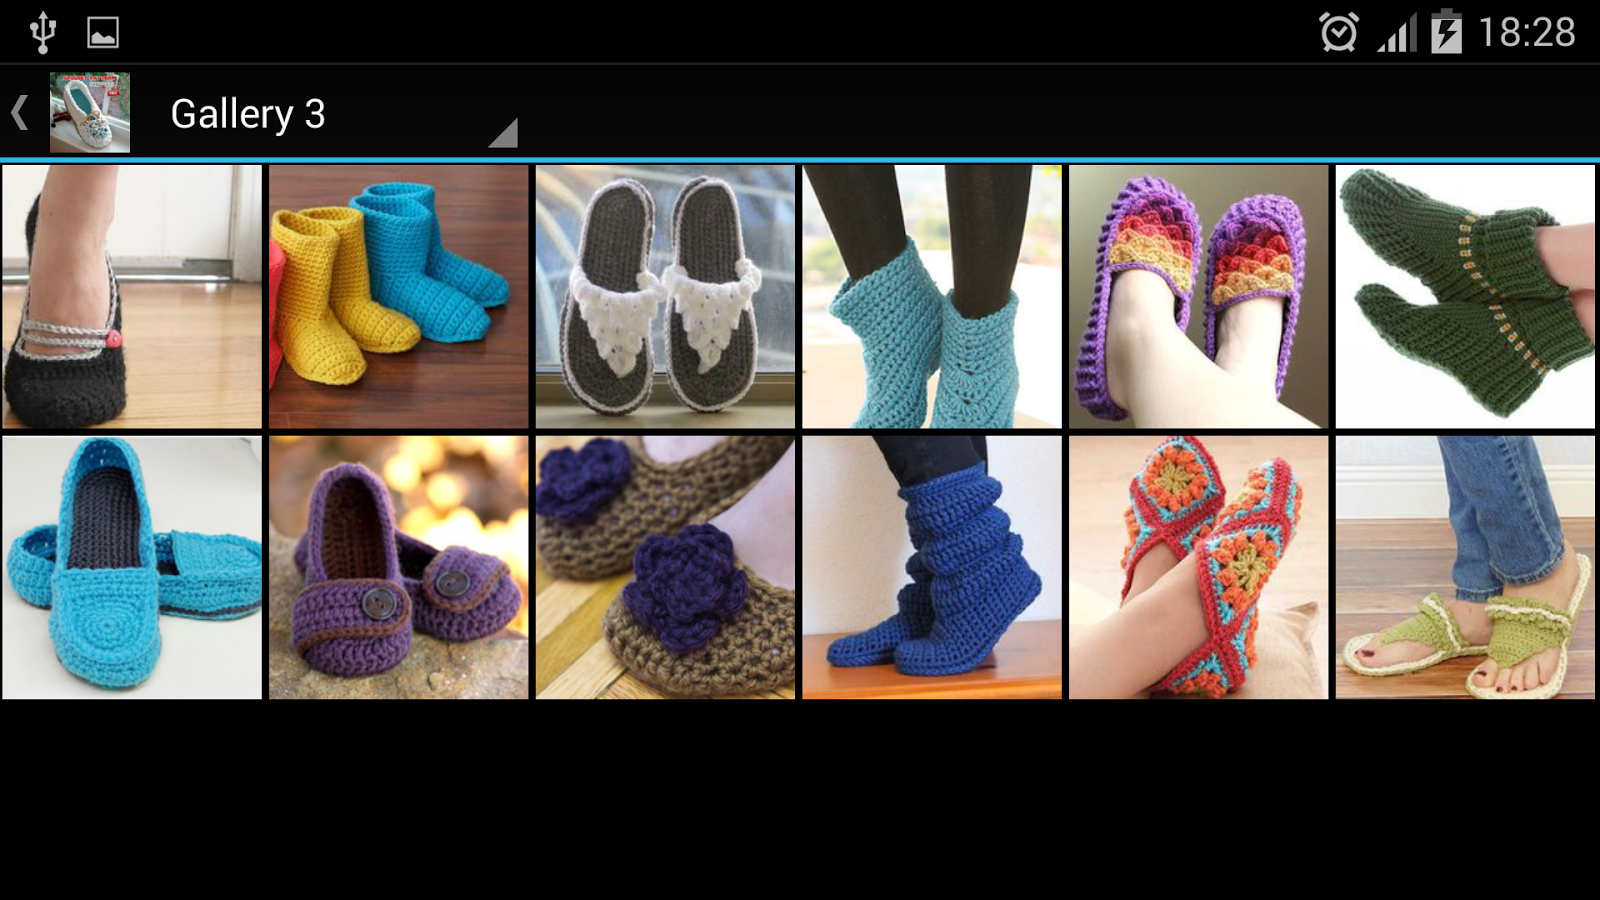 Crochet Patterns App : Crochet Pattern Slippers - Android Apps on Google Play